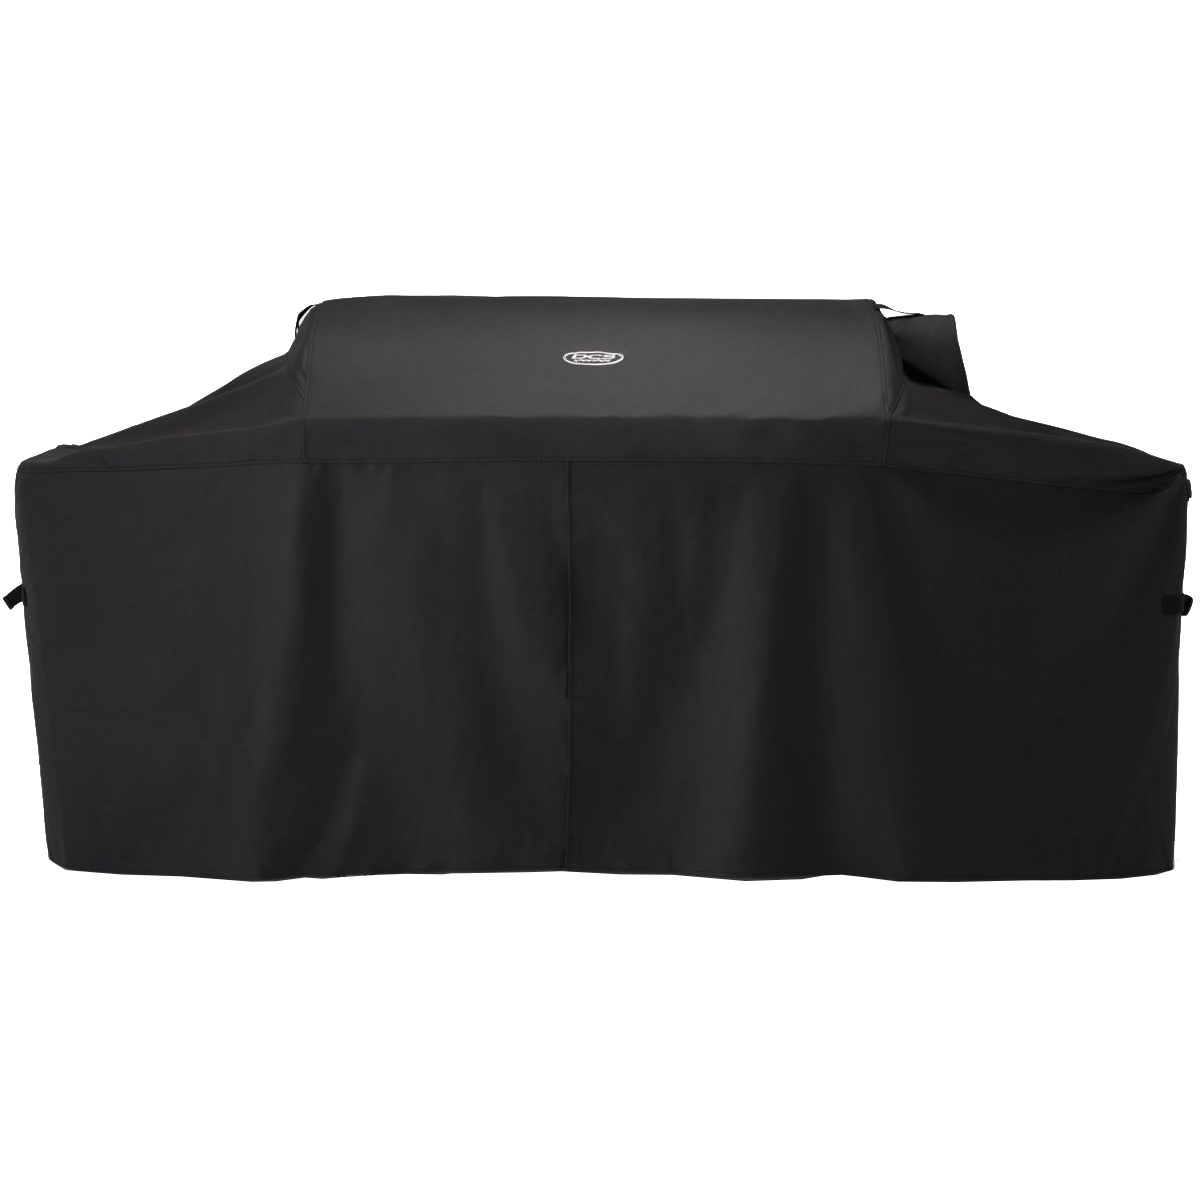 DCS Grill Cover for 48 inch Cart Mounted Grills